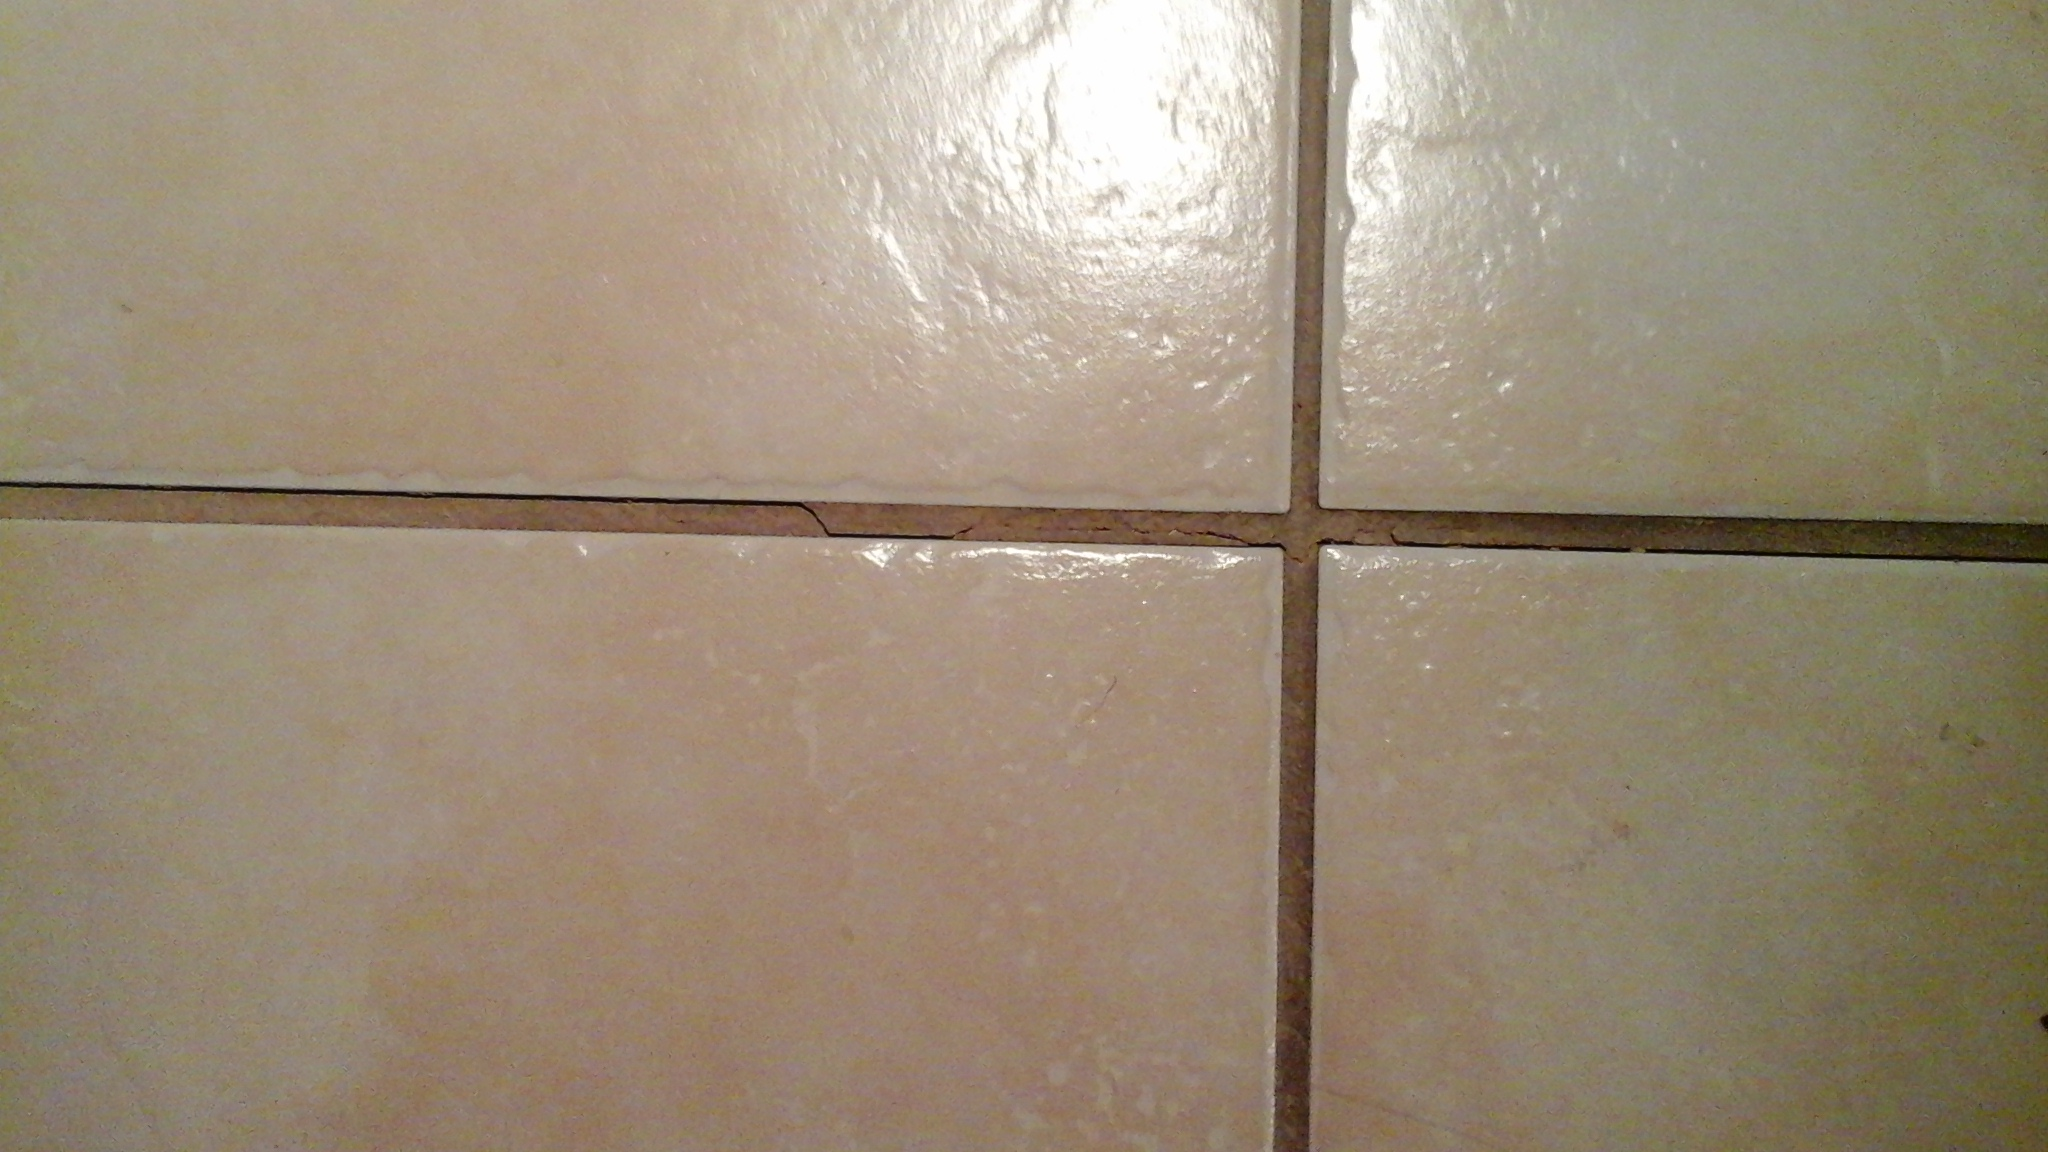 Floor tile grout cracking